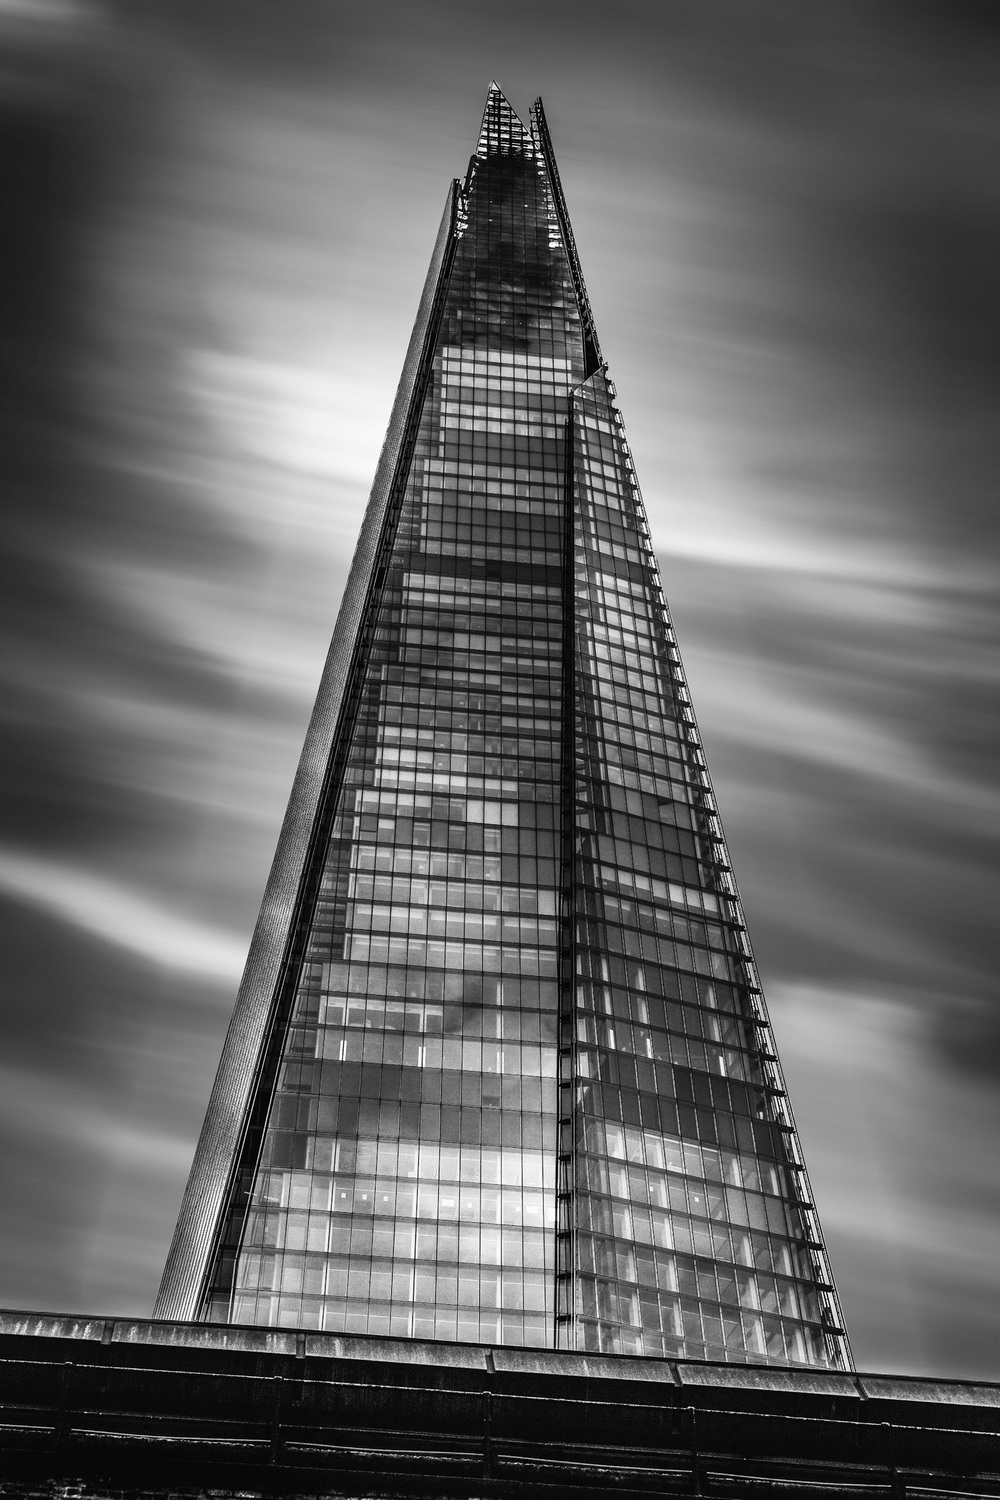 The Shard, London, by Rick McEvoy architectural photographer